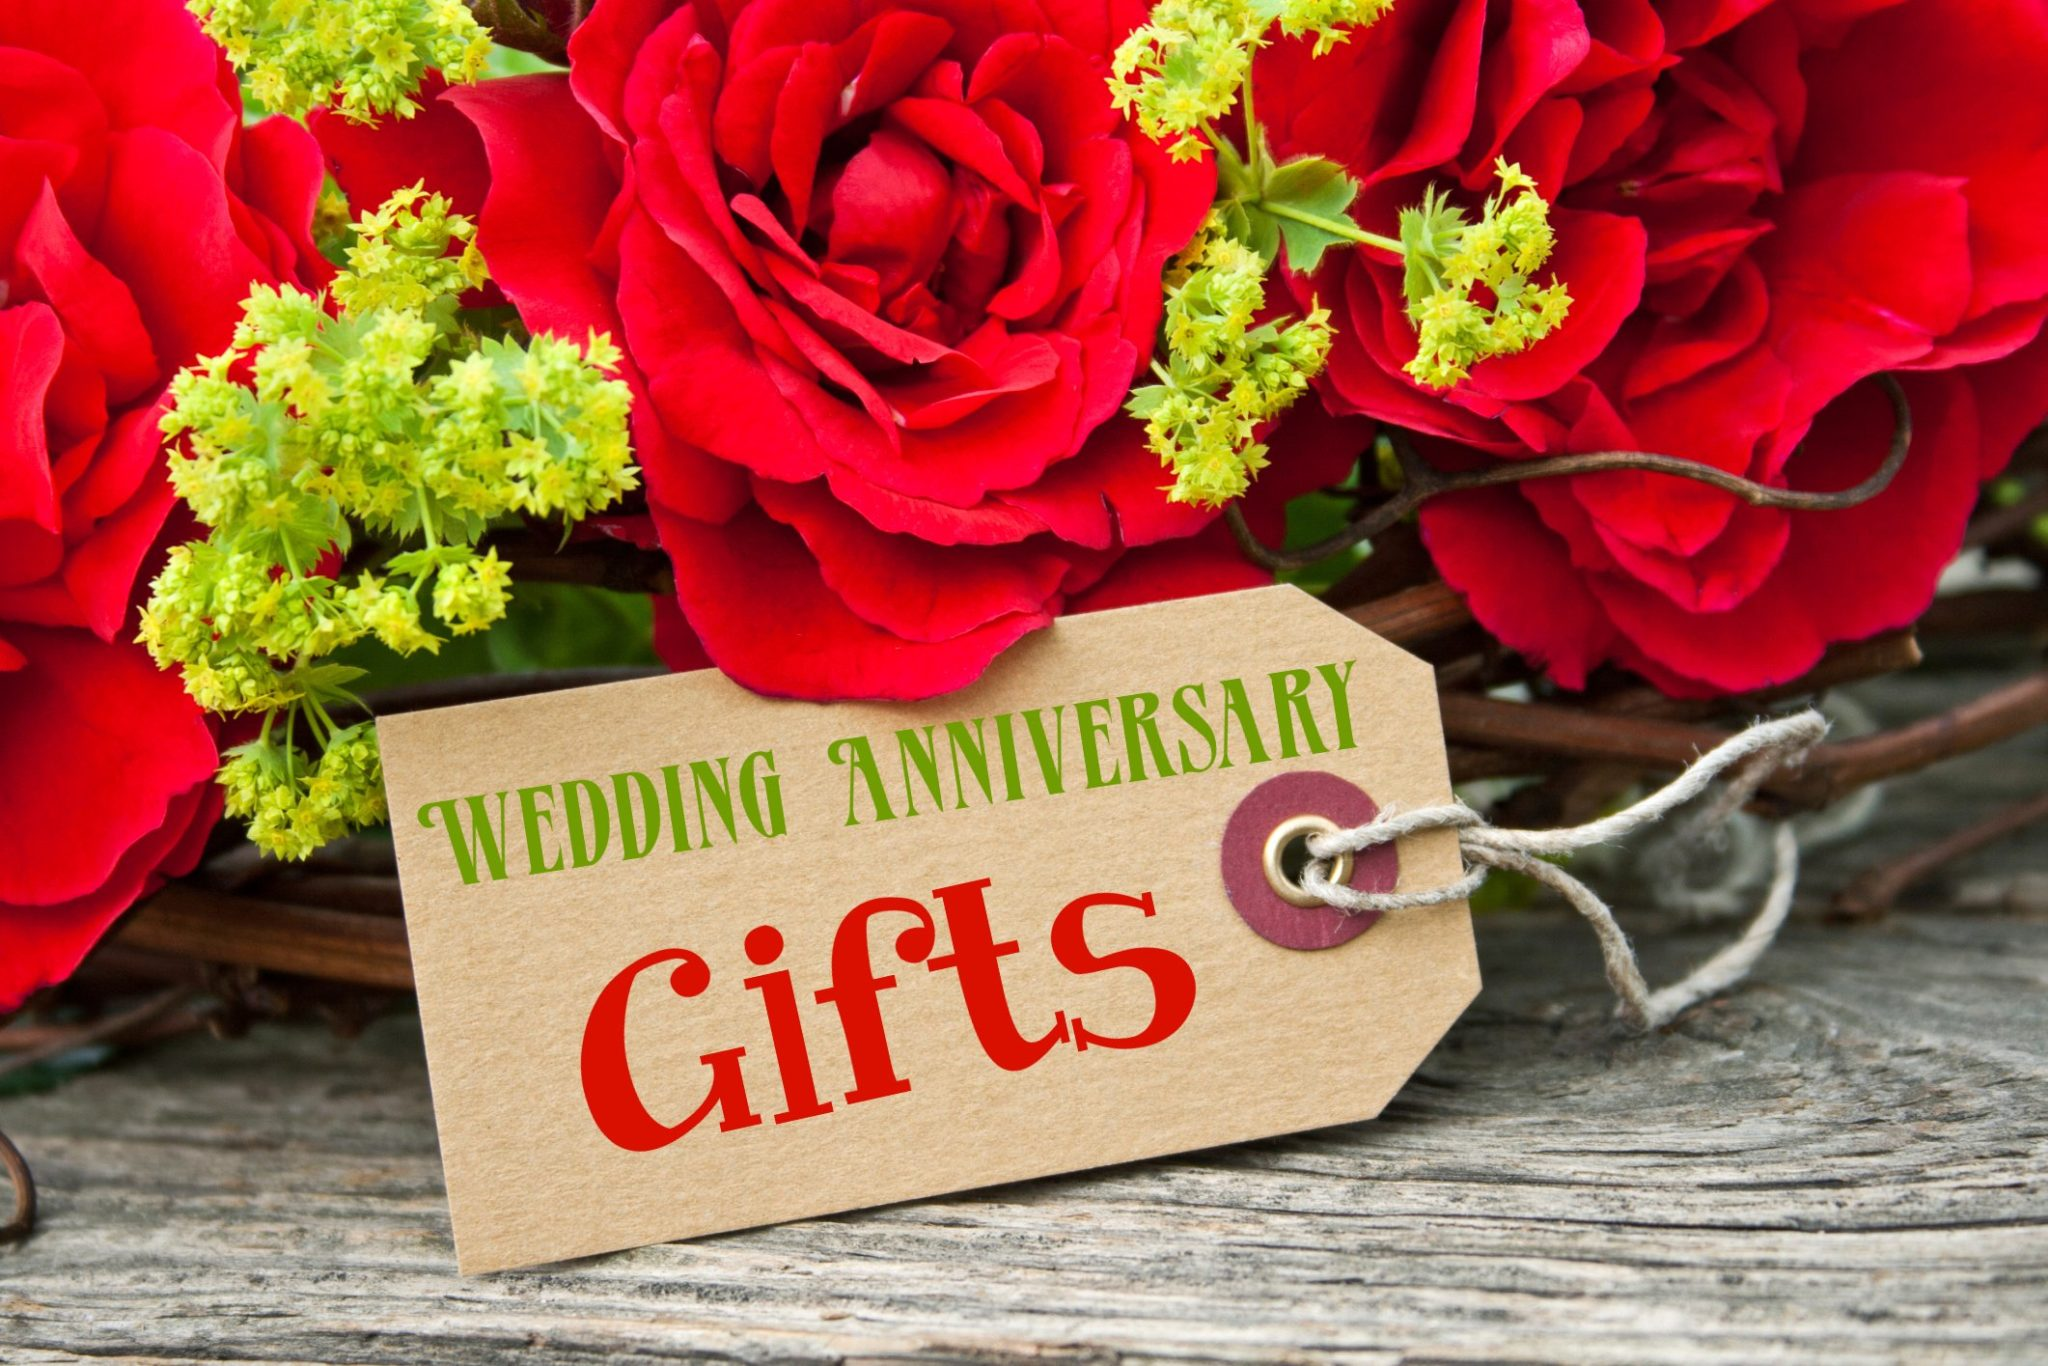 Best Anniversary Gift For Wedding: Finding The Best 7th Year Wedding Anniversary Gifts